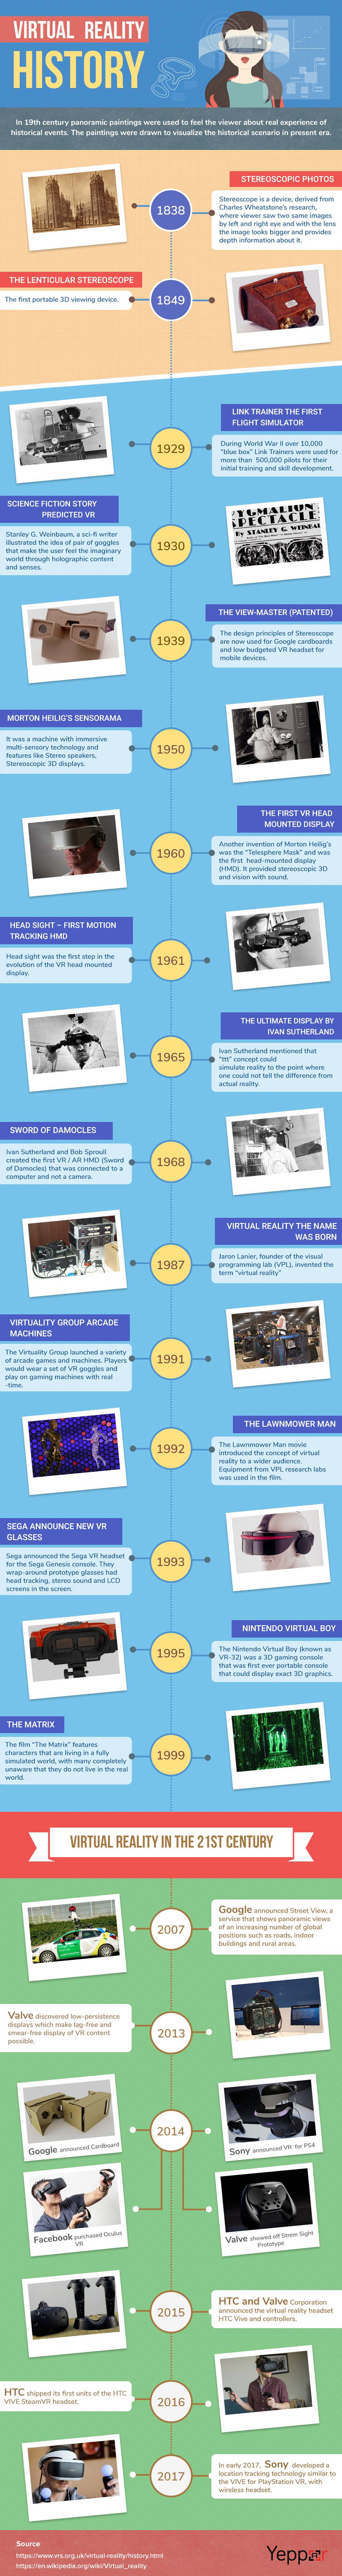 Virtual Reality History (Infographic)